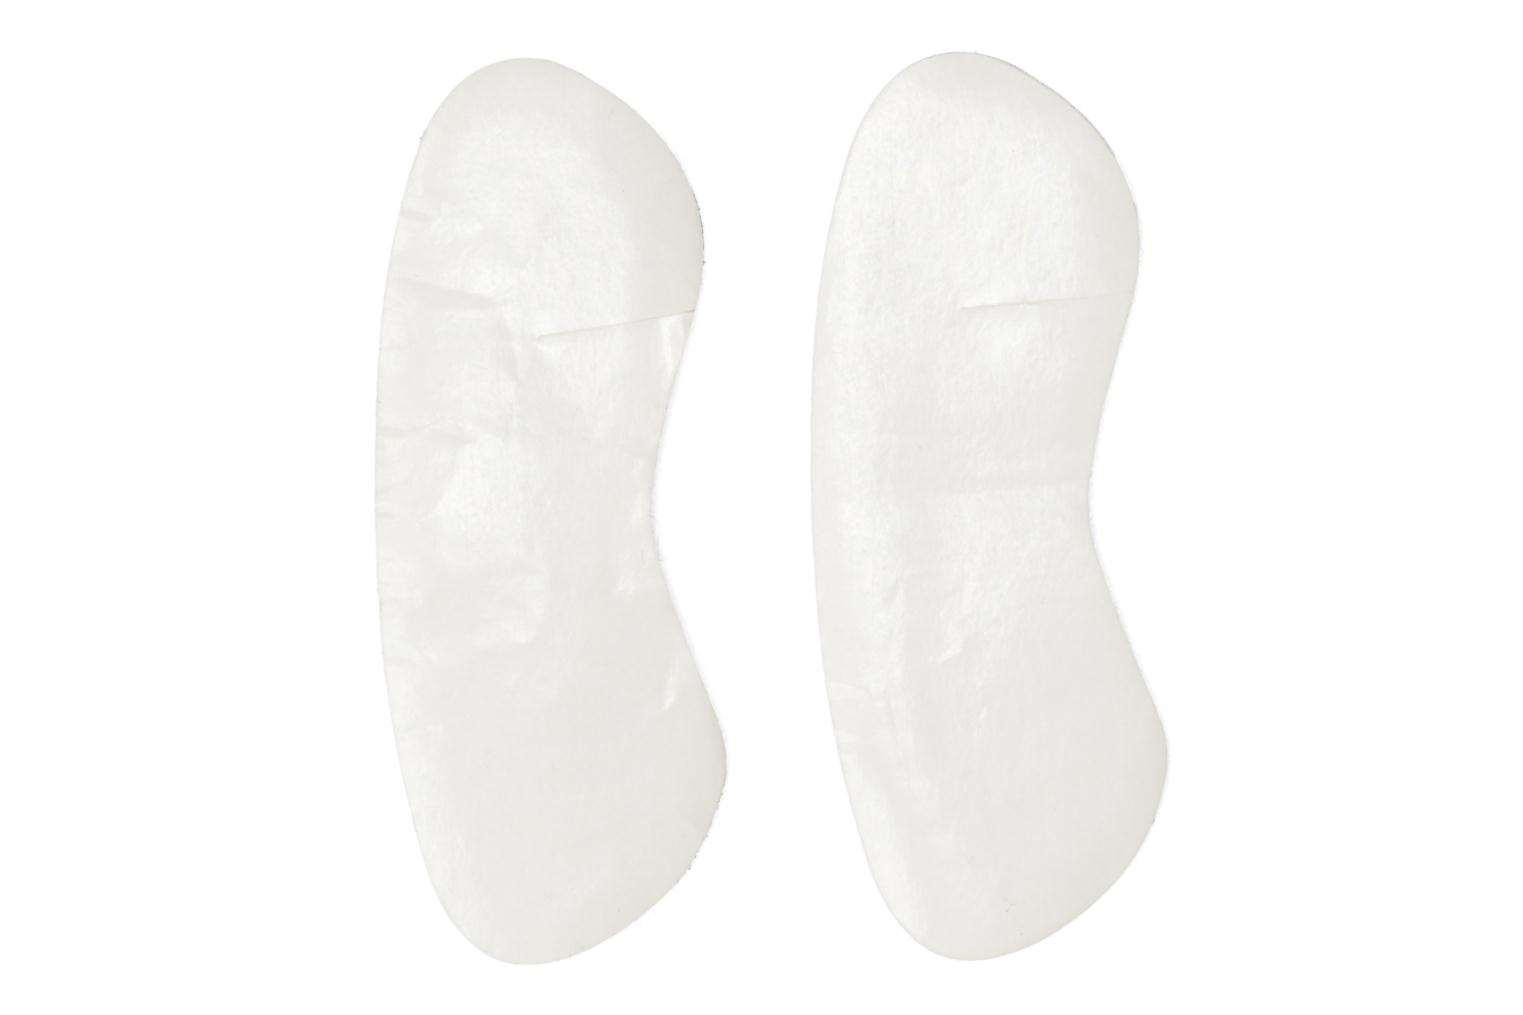 Insoles Famaco Antirubbing gel Colorless model view